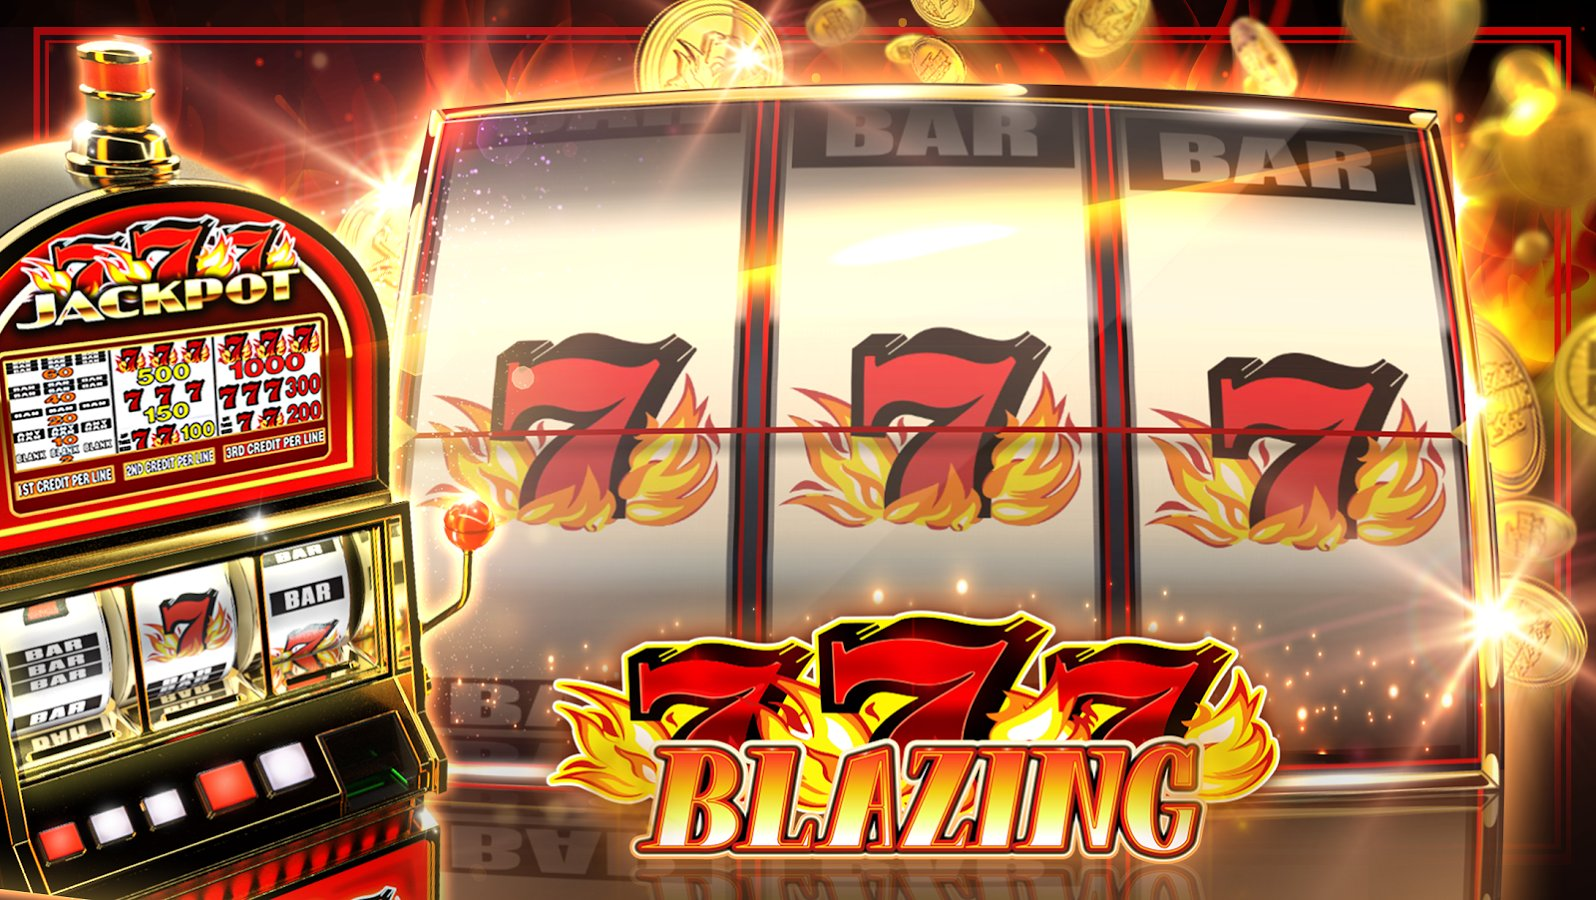 Play free slot machine online for fun